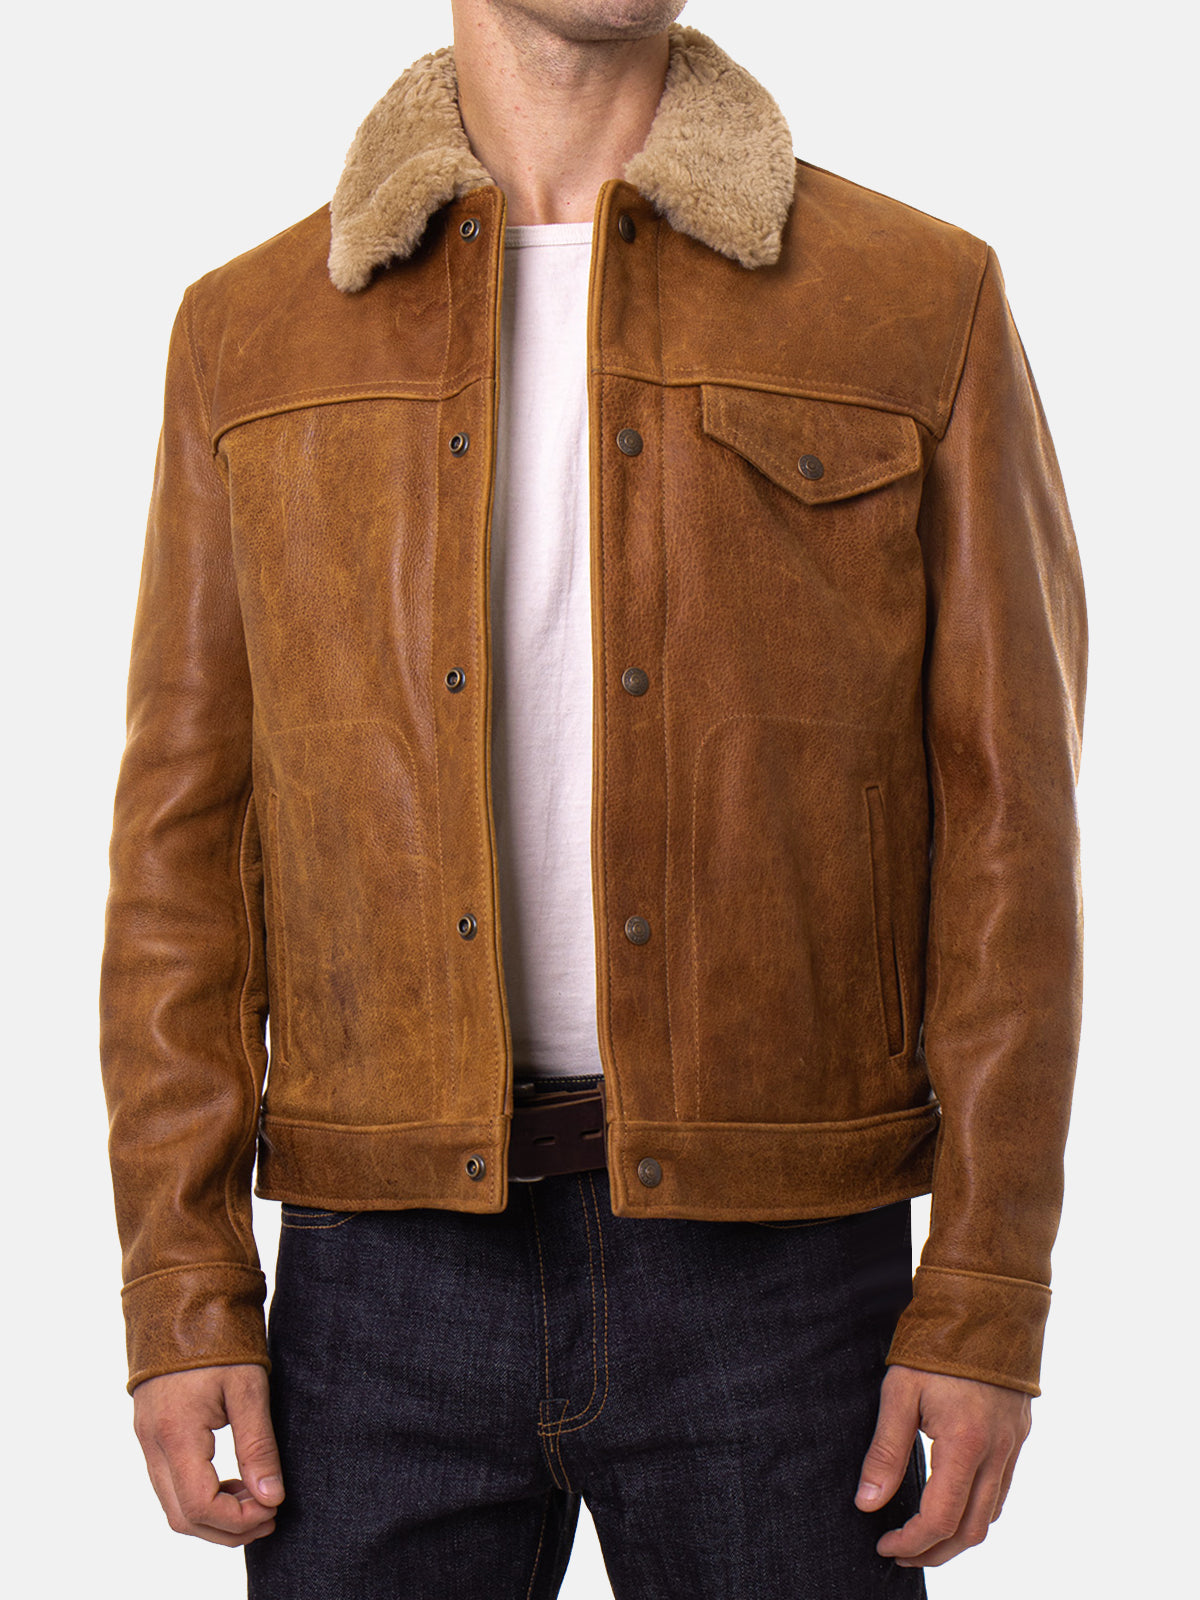 Brown Leather Men's Trucker Jacket